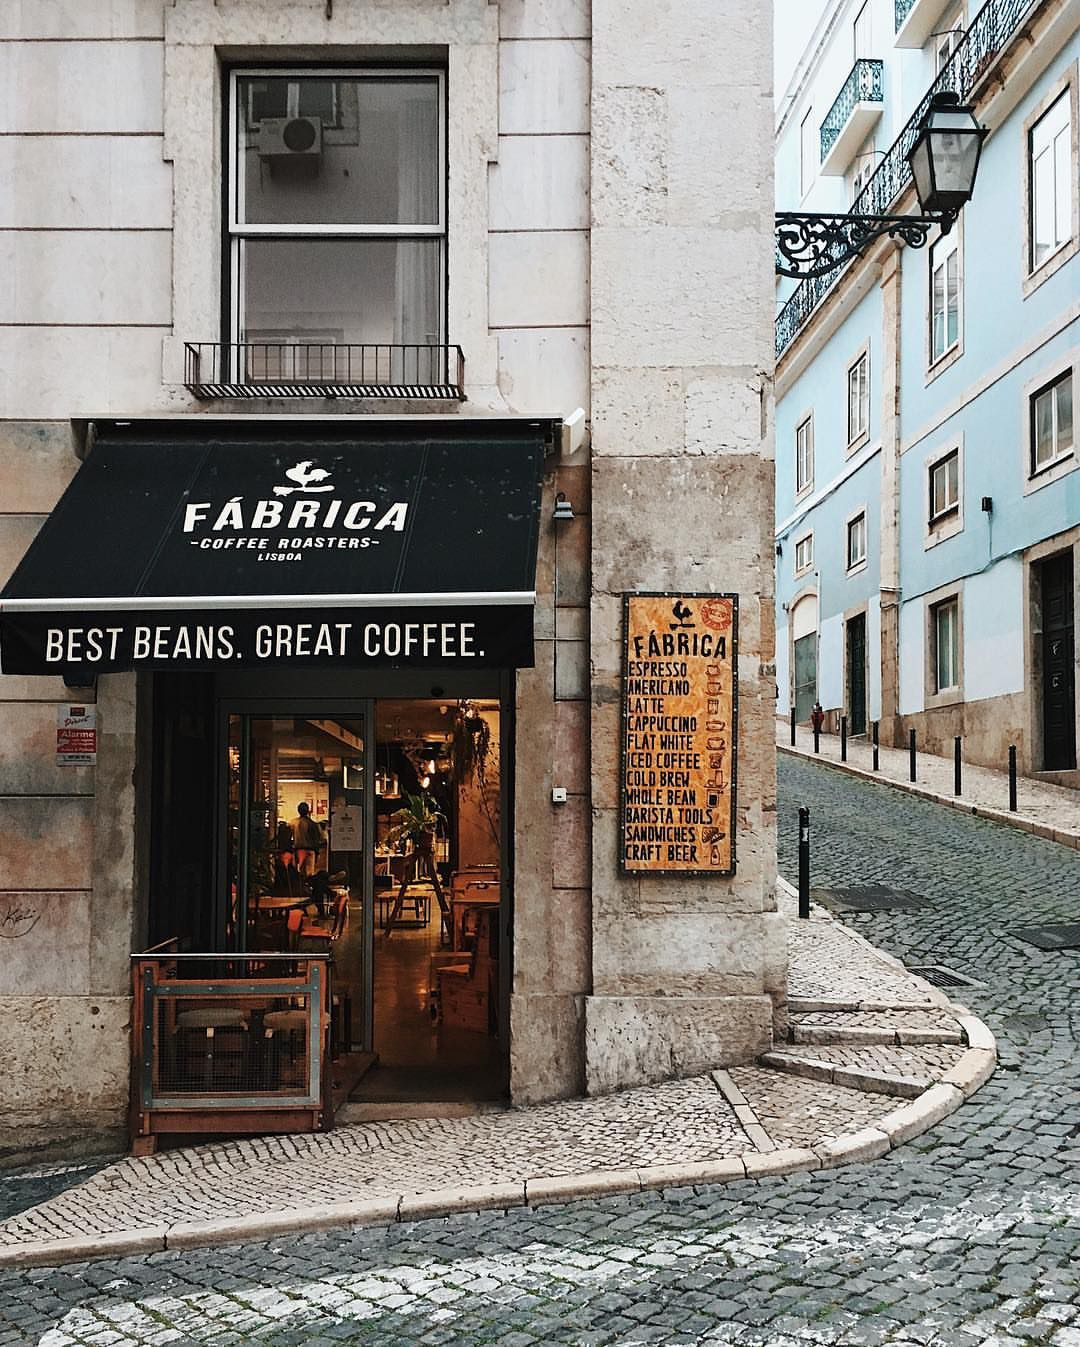 Fabricacoffeeroasters Has Three Locations Just For You One Of Them Is A Coffee Truck Which Looks Amazing Check T Coffee Roasters Cafe Restaurant Coffee Shop